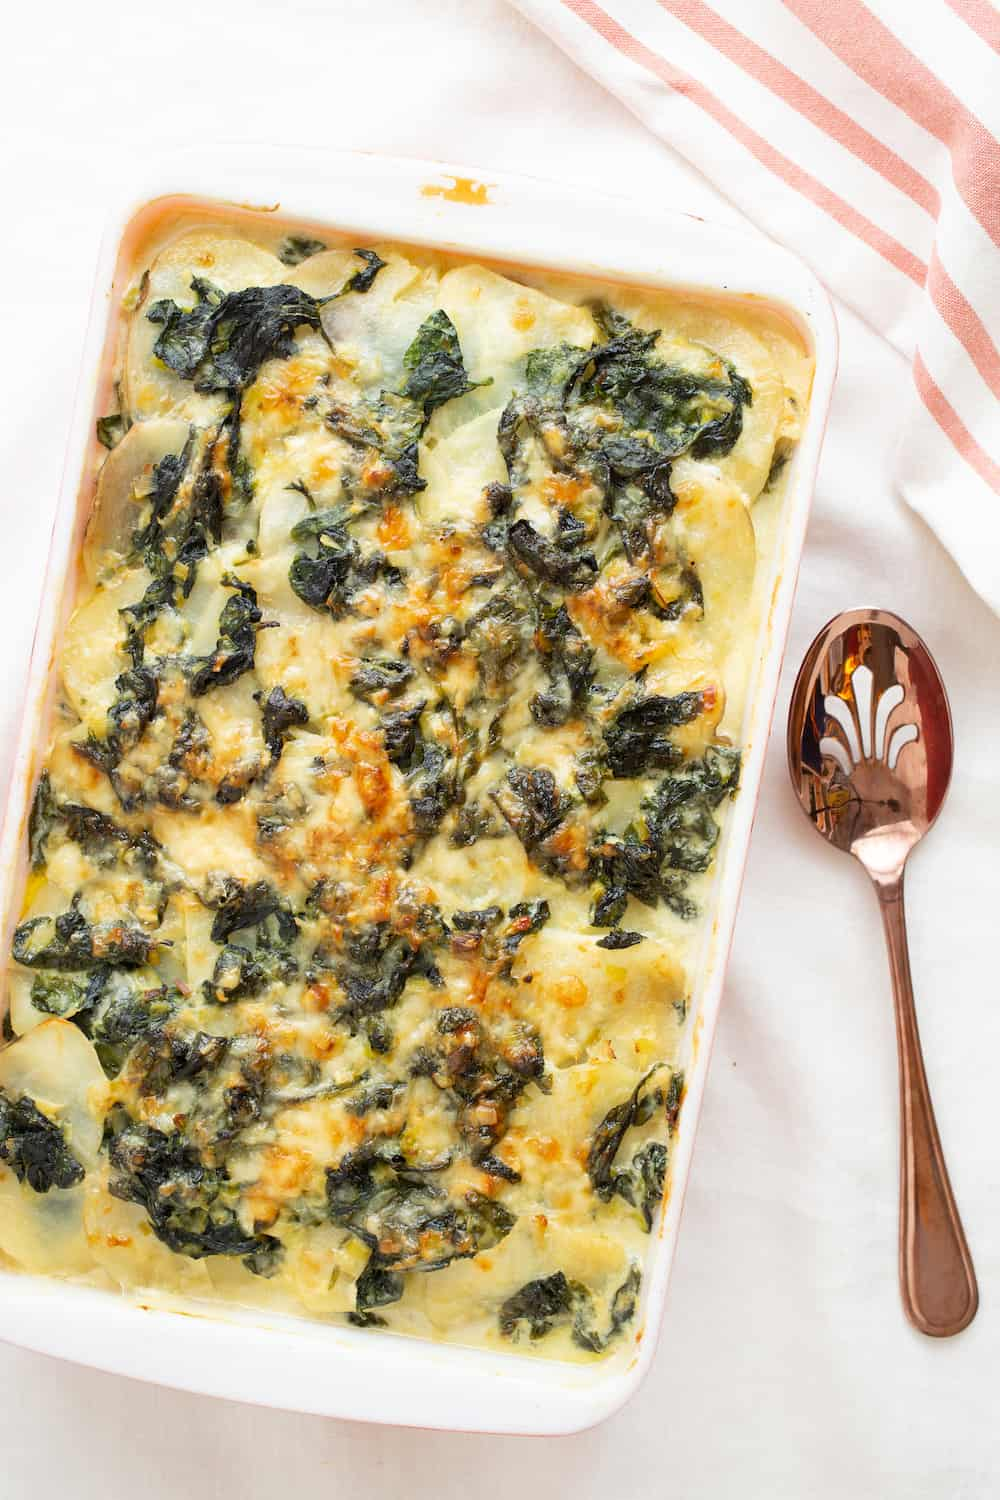 Celery Root Spinach Gratin: A Steakhouse-Inspired Side